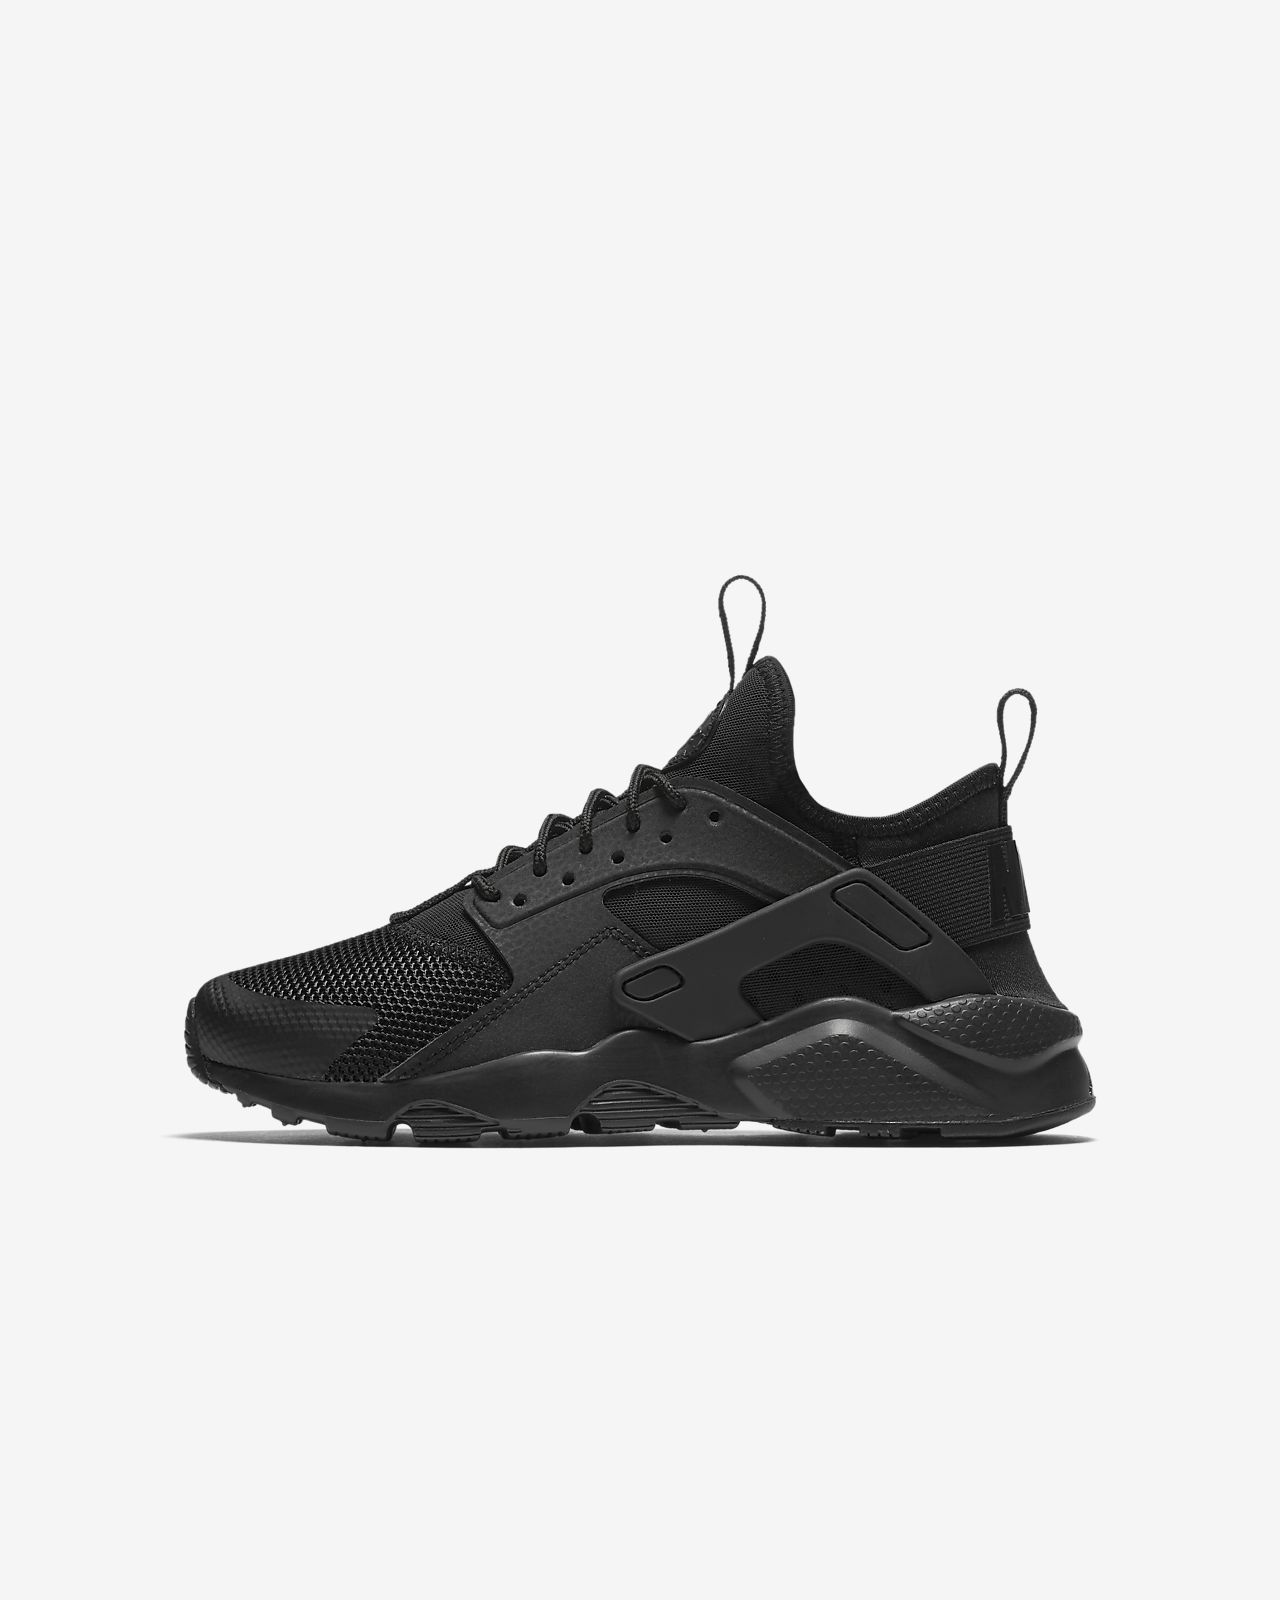 best website 74d8c cd4a5 ... Chaussure Nike Air Huarache Ultra pour Enfant plus âgé